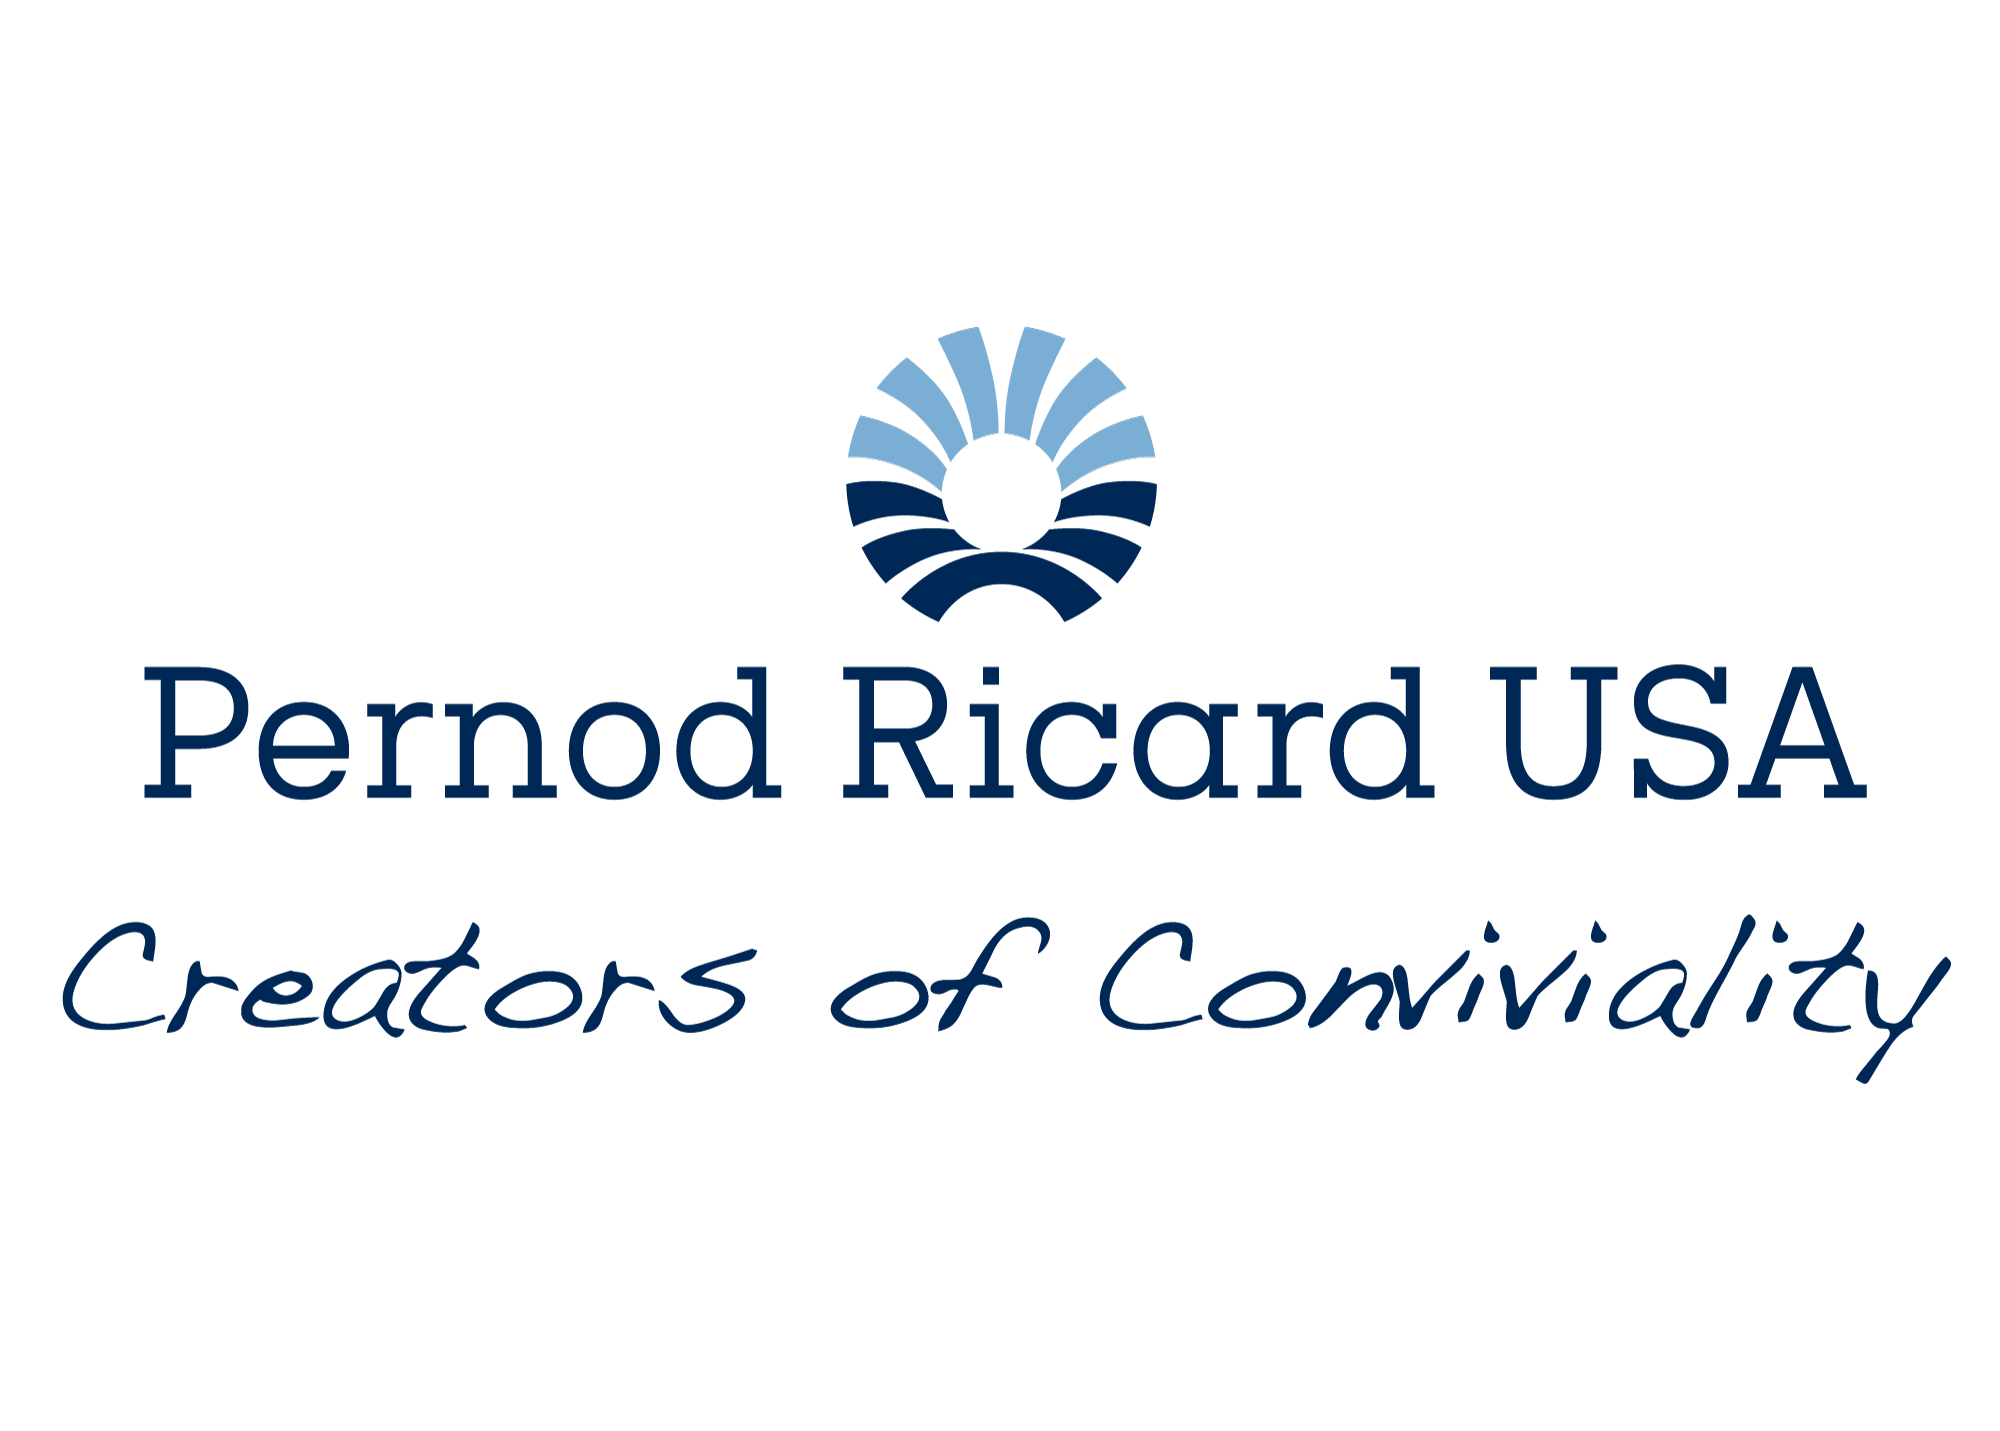 More Info for Pernod Ricard USA